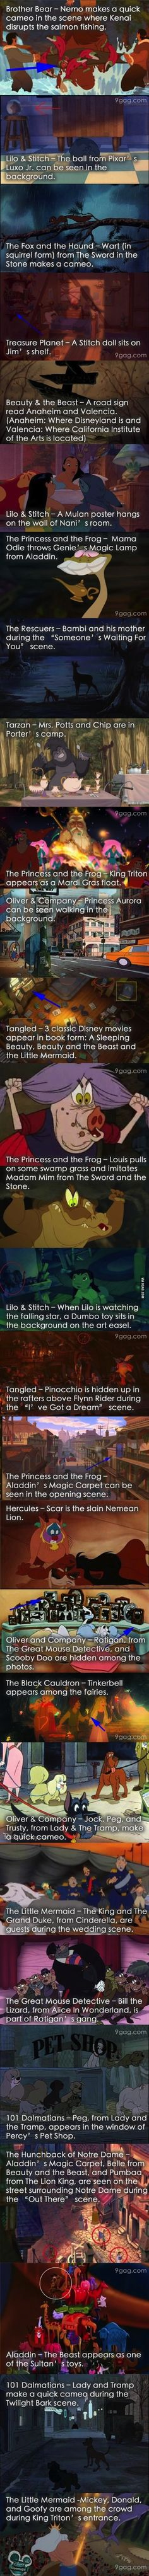 Hidden Easter Eggs in Disney Movies